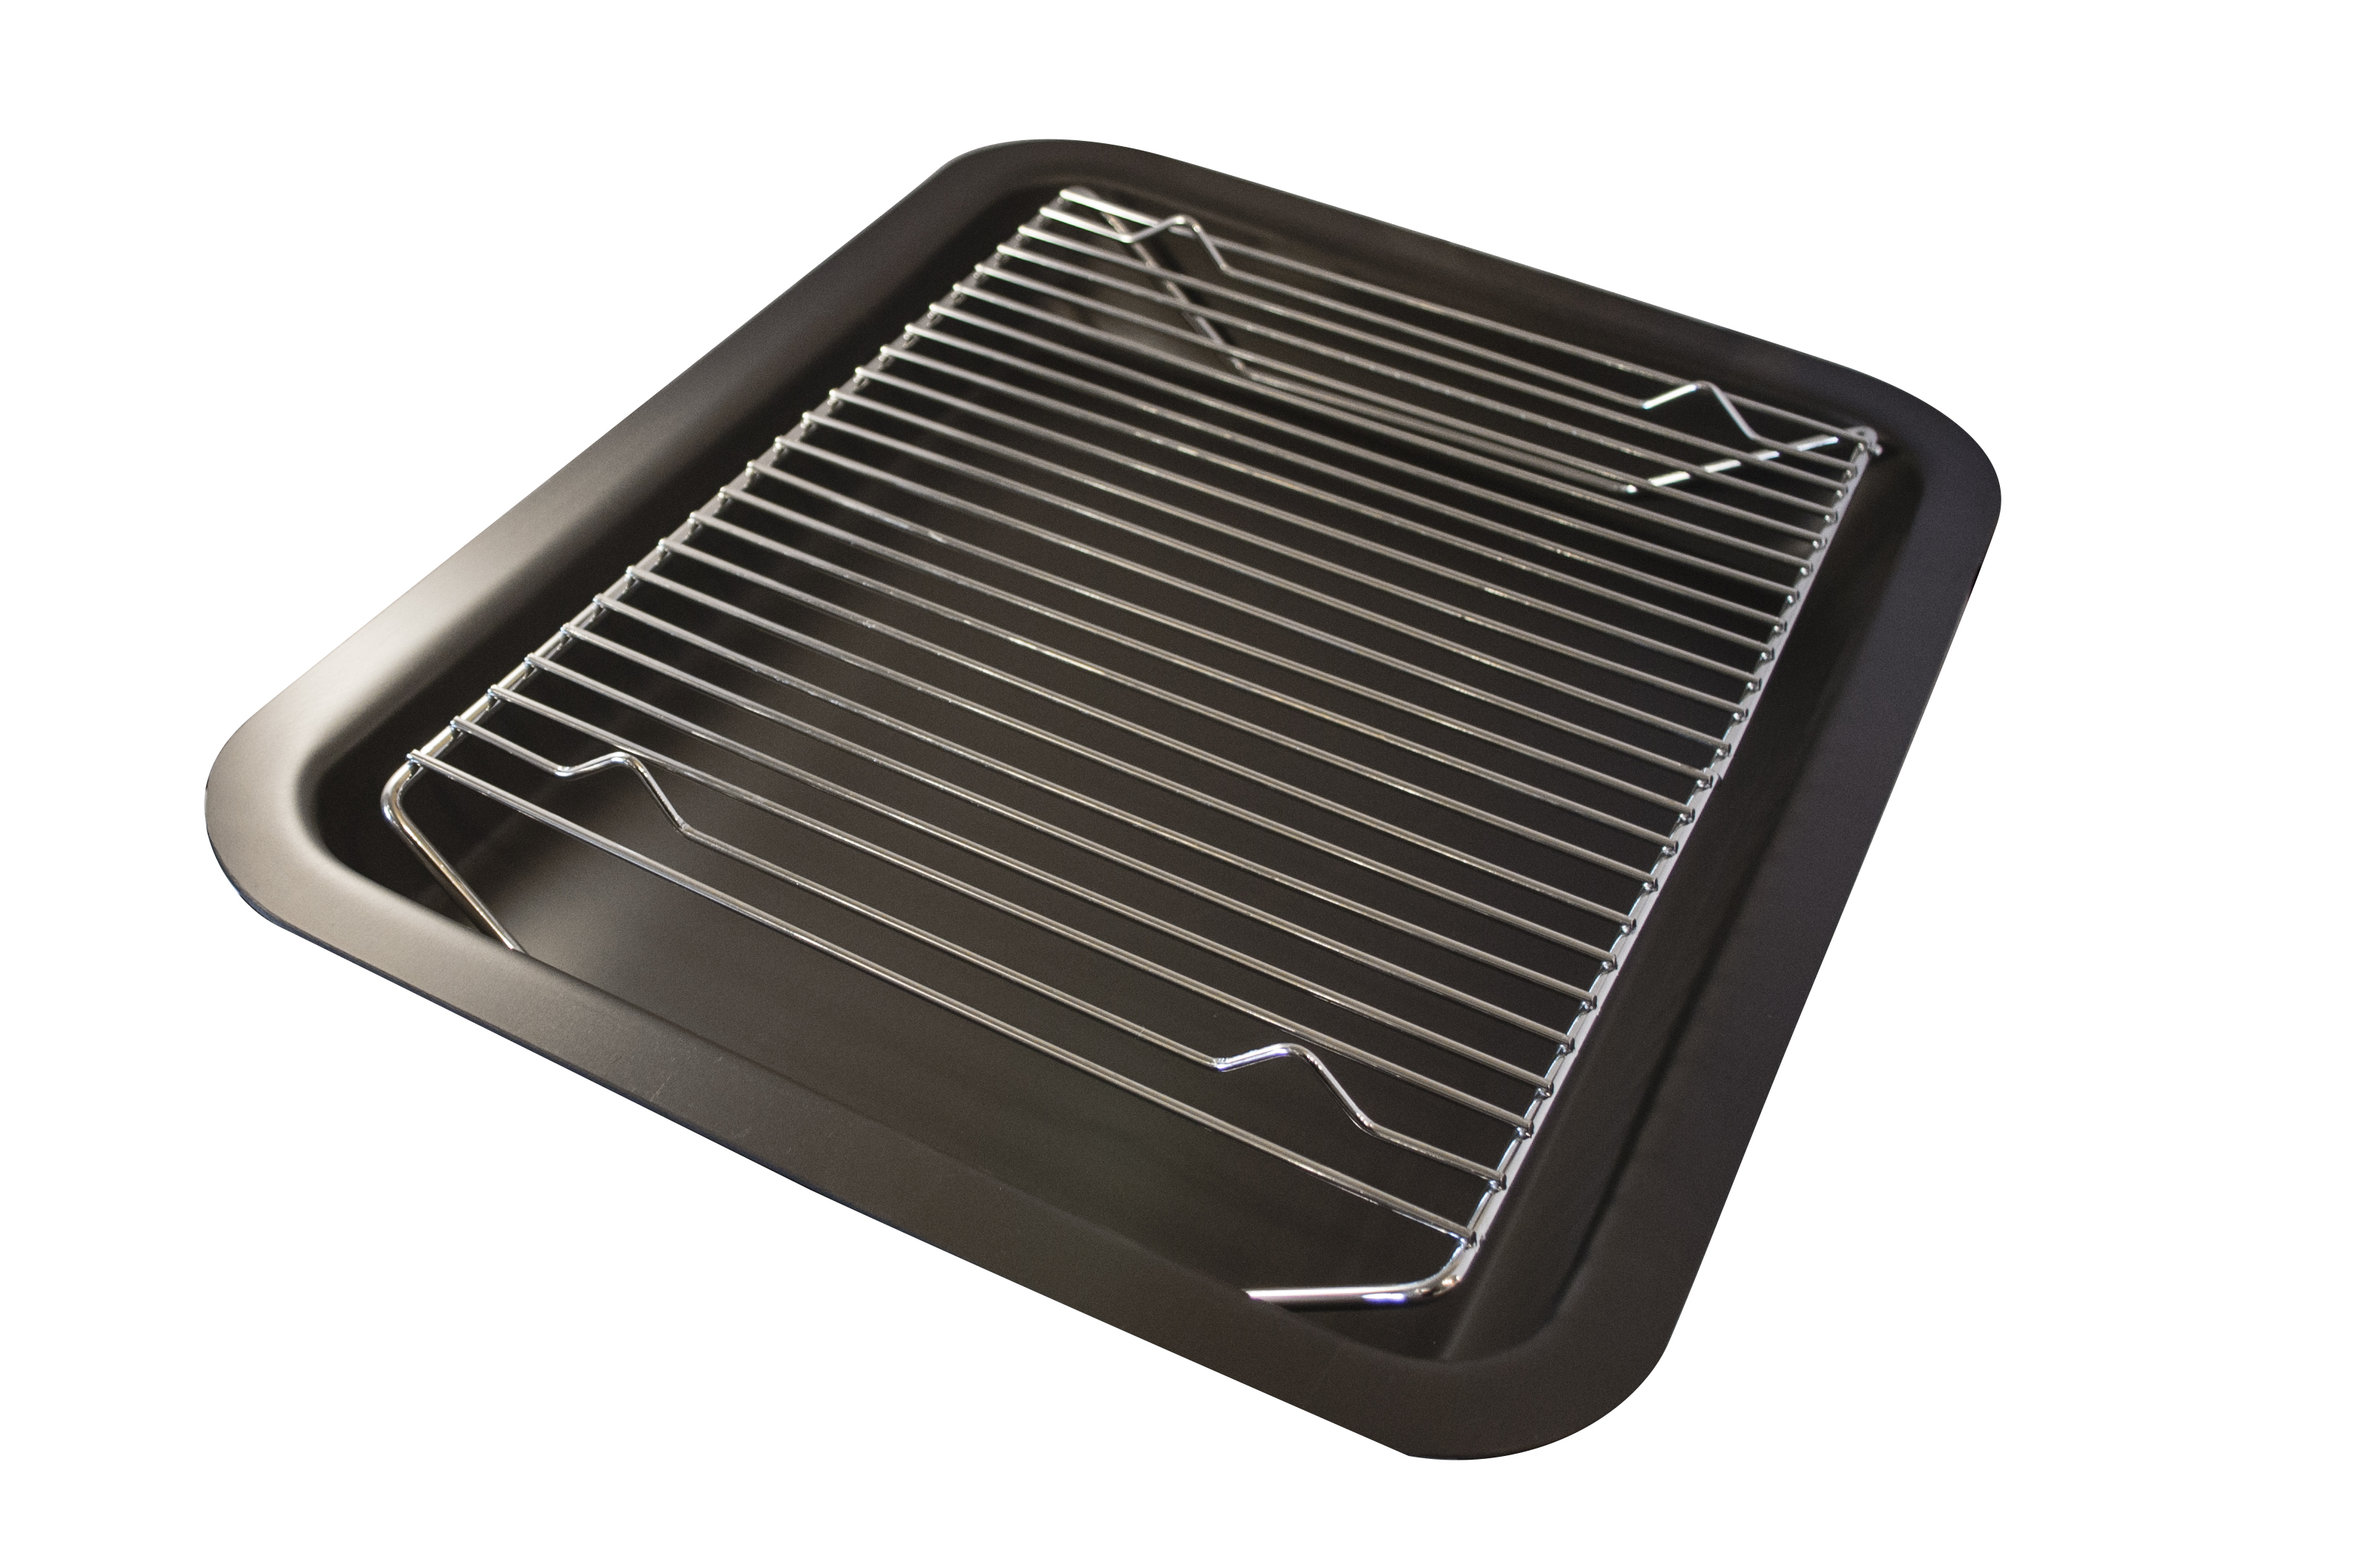 Large Roasting Dish & Inlet Tray